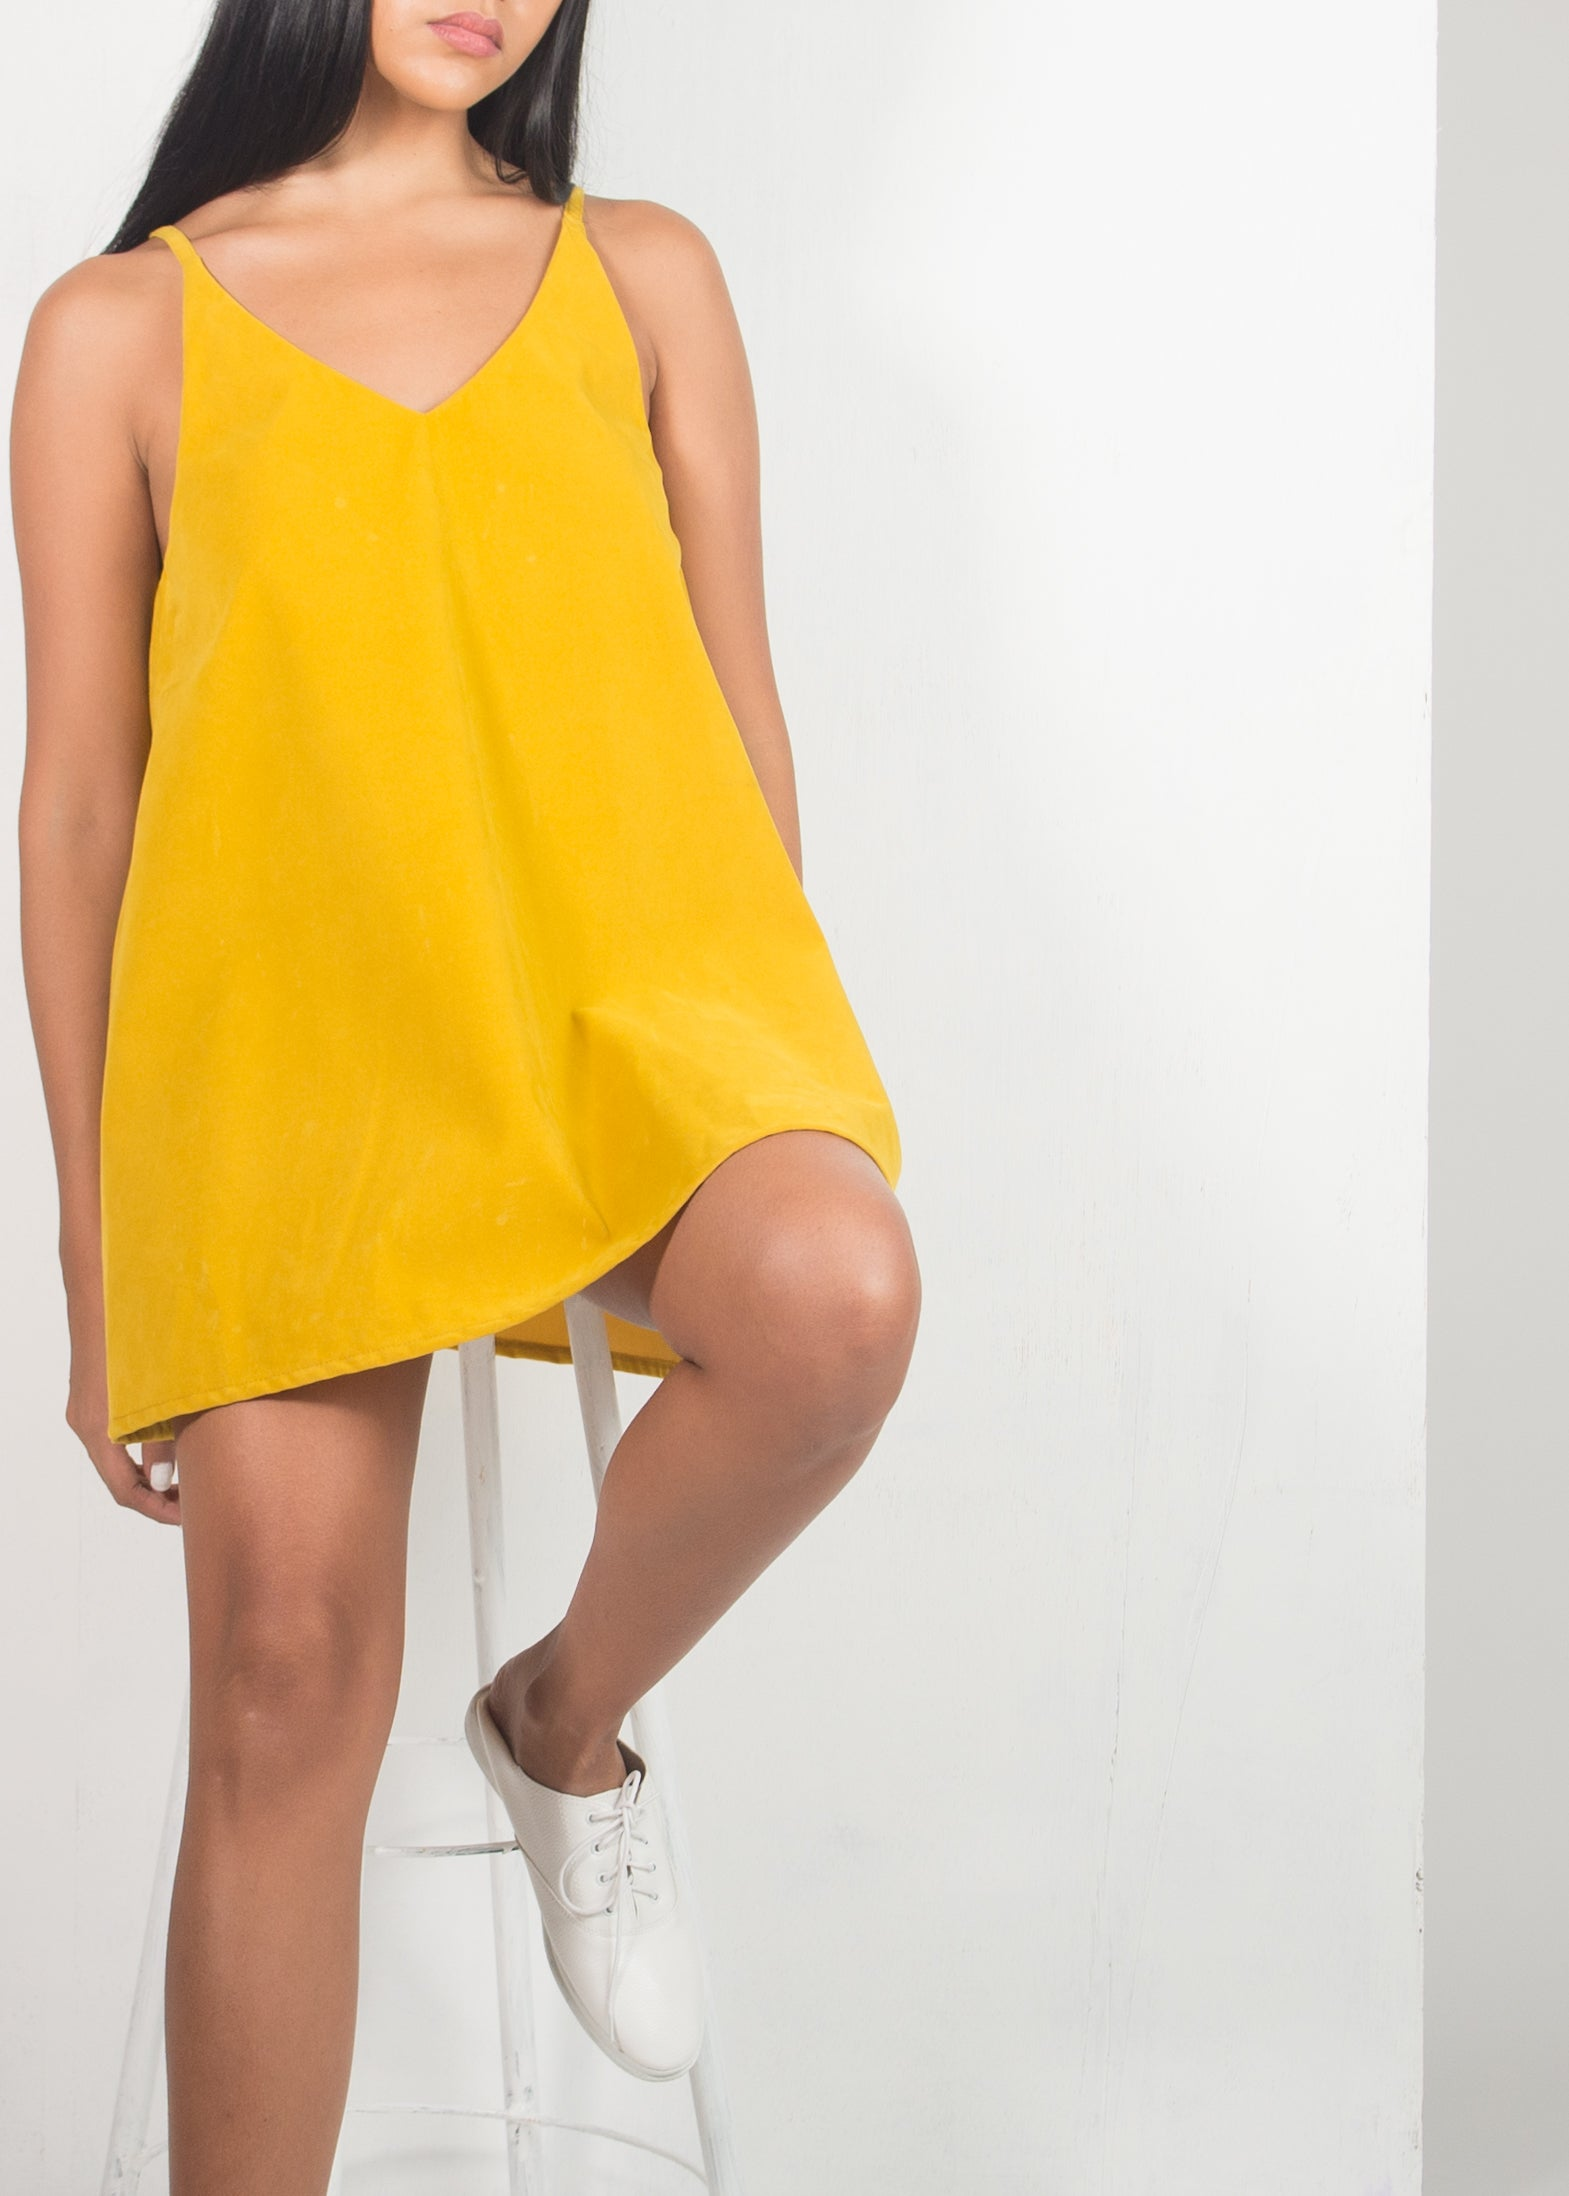 Classy Tank Top Uniform- Long in Yellow